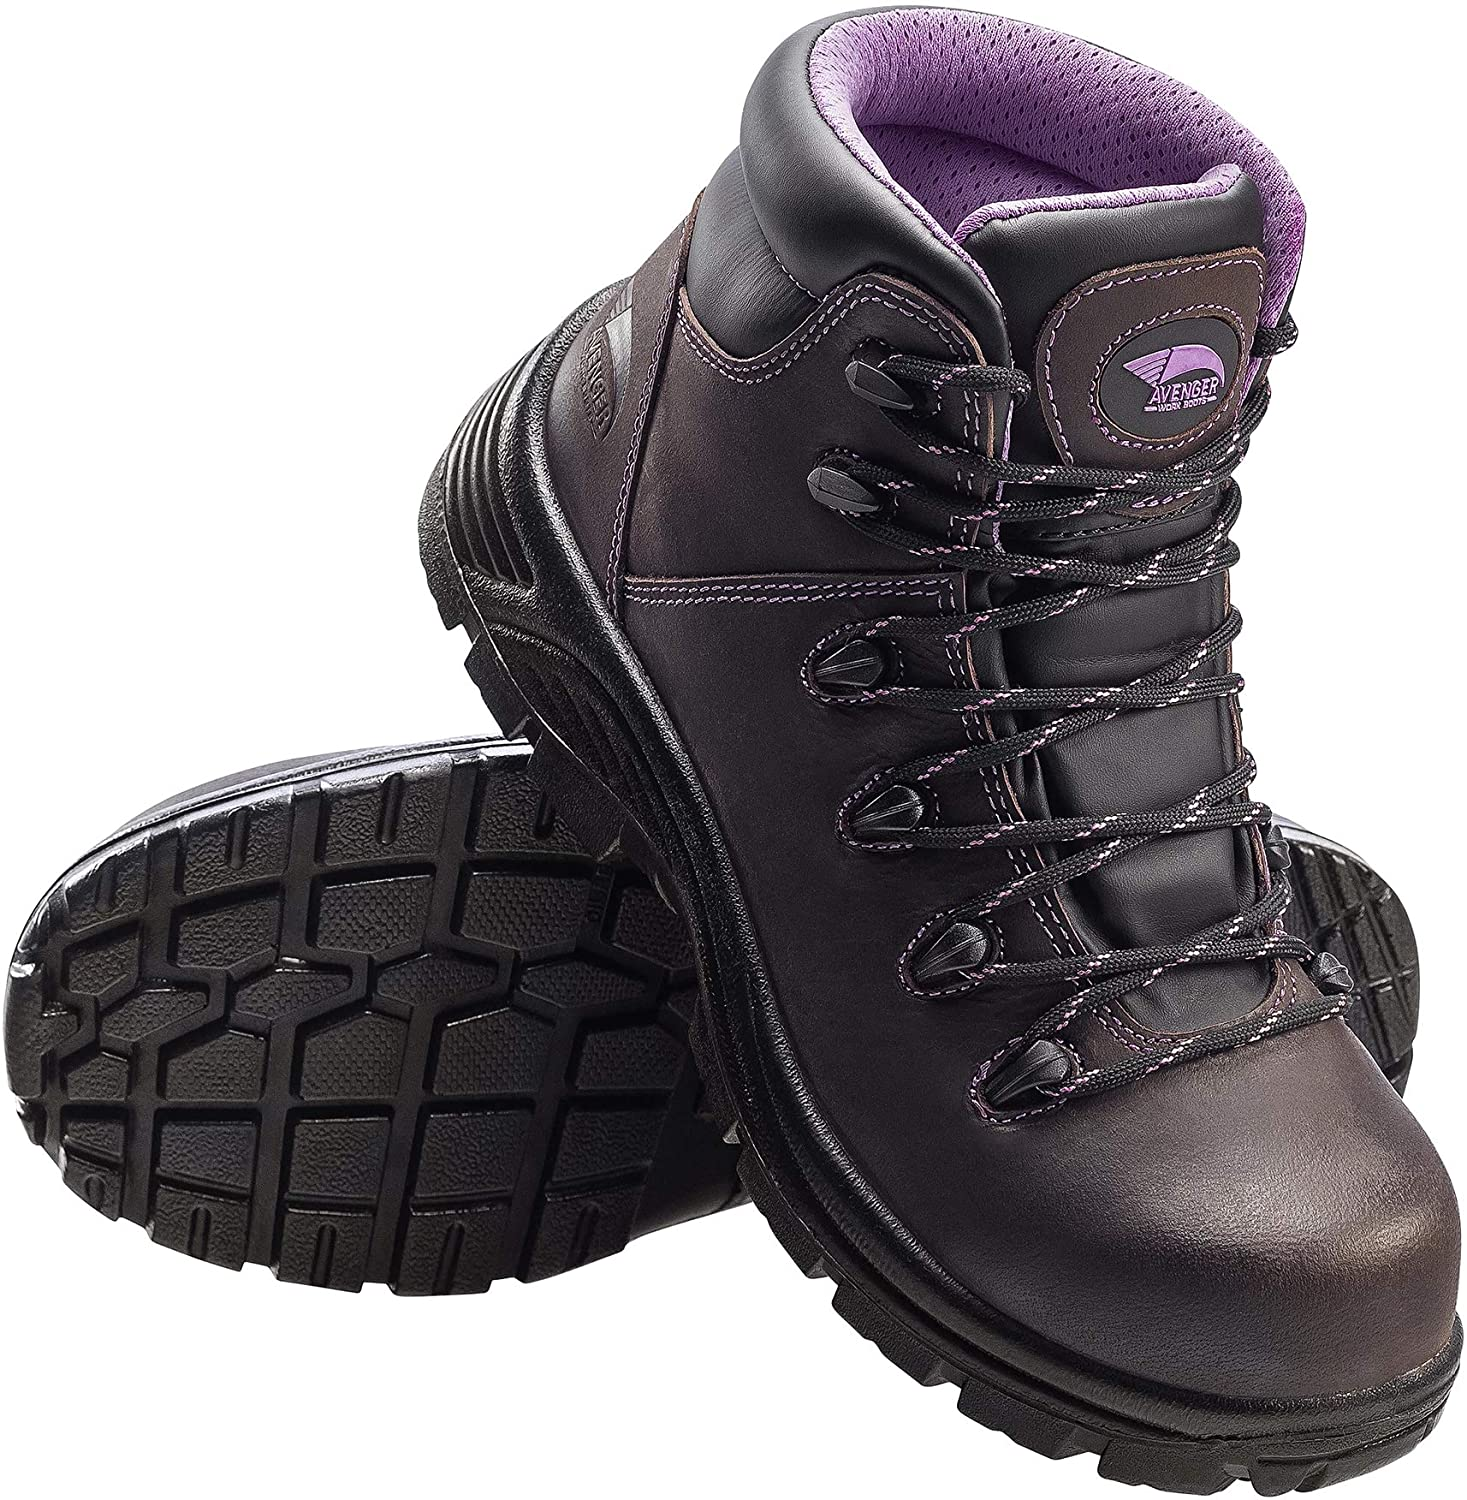 Avenger Work Boots Womens Framer Comp Toe Puncture Resistant Waterproof Boot